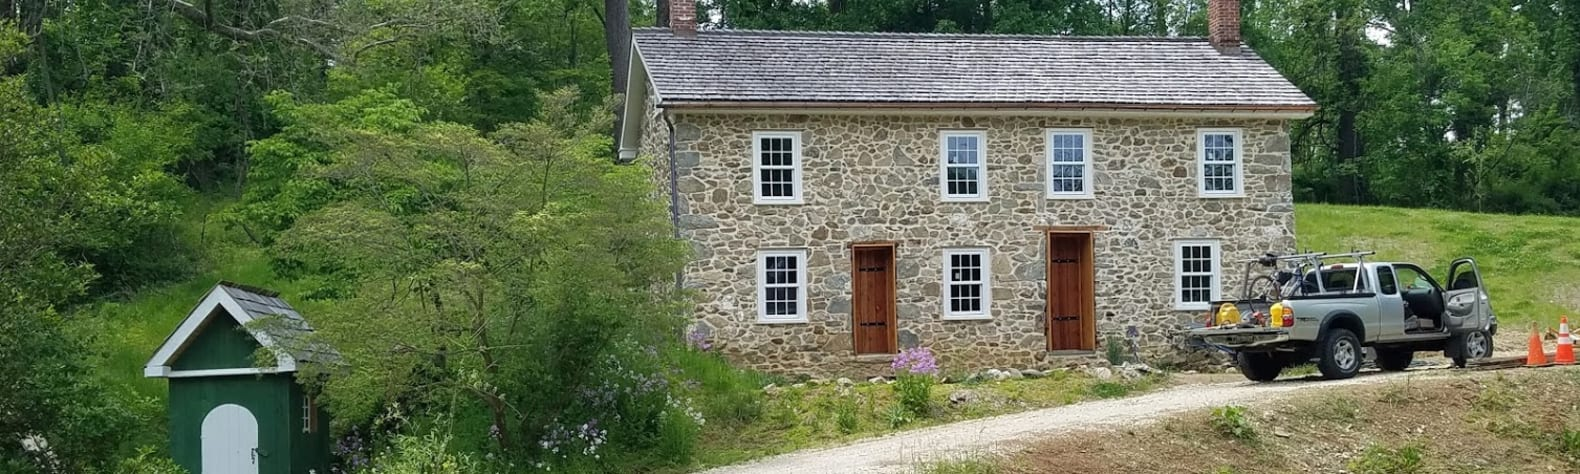 Historic Valley Forge Home